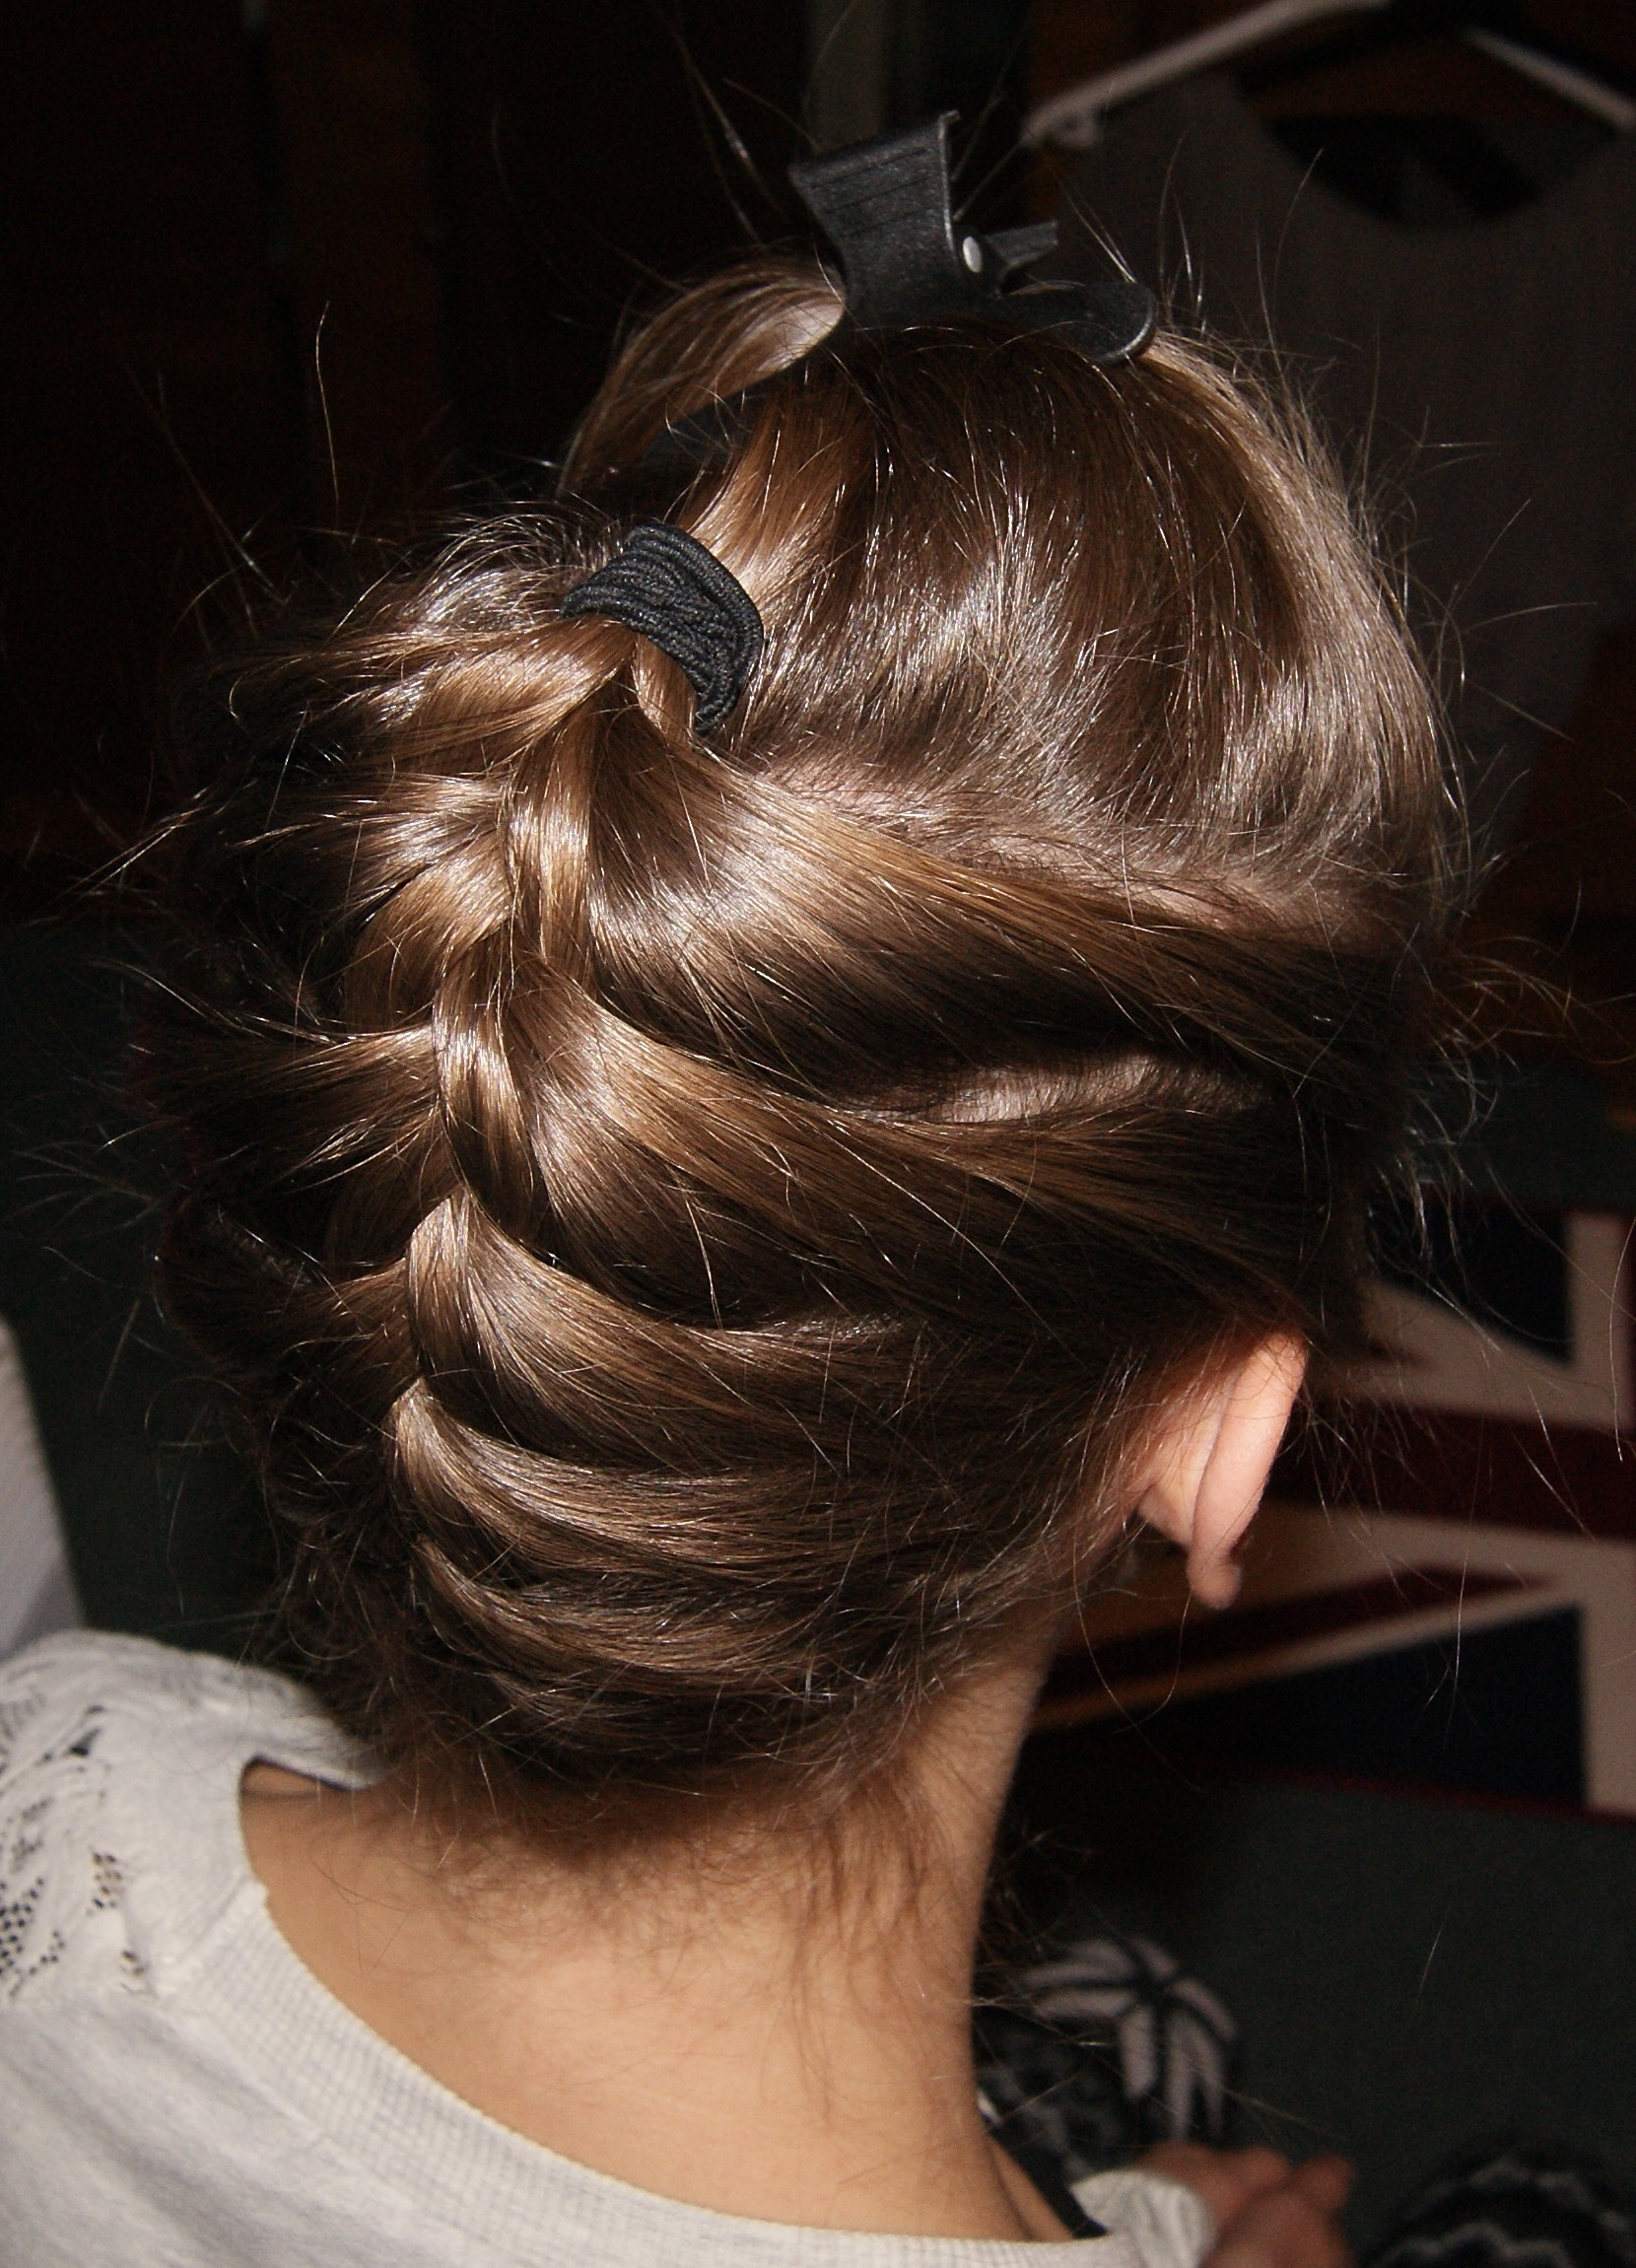 Coiffure Tresse Noeud Natte Africaine Chignon Donuts 43 Petit Noeud Solène Hely